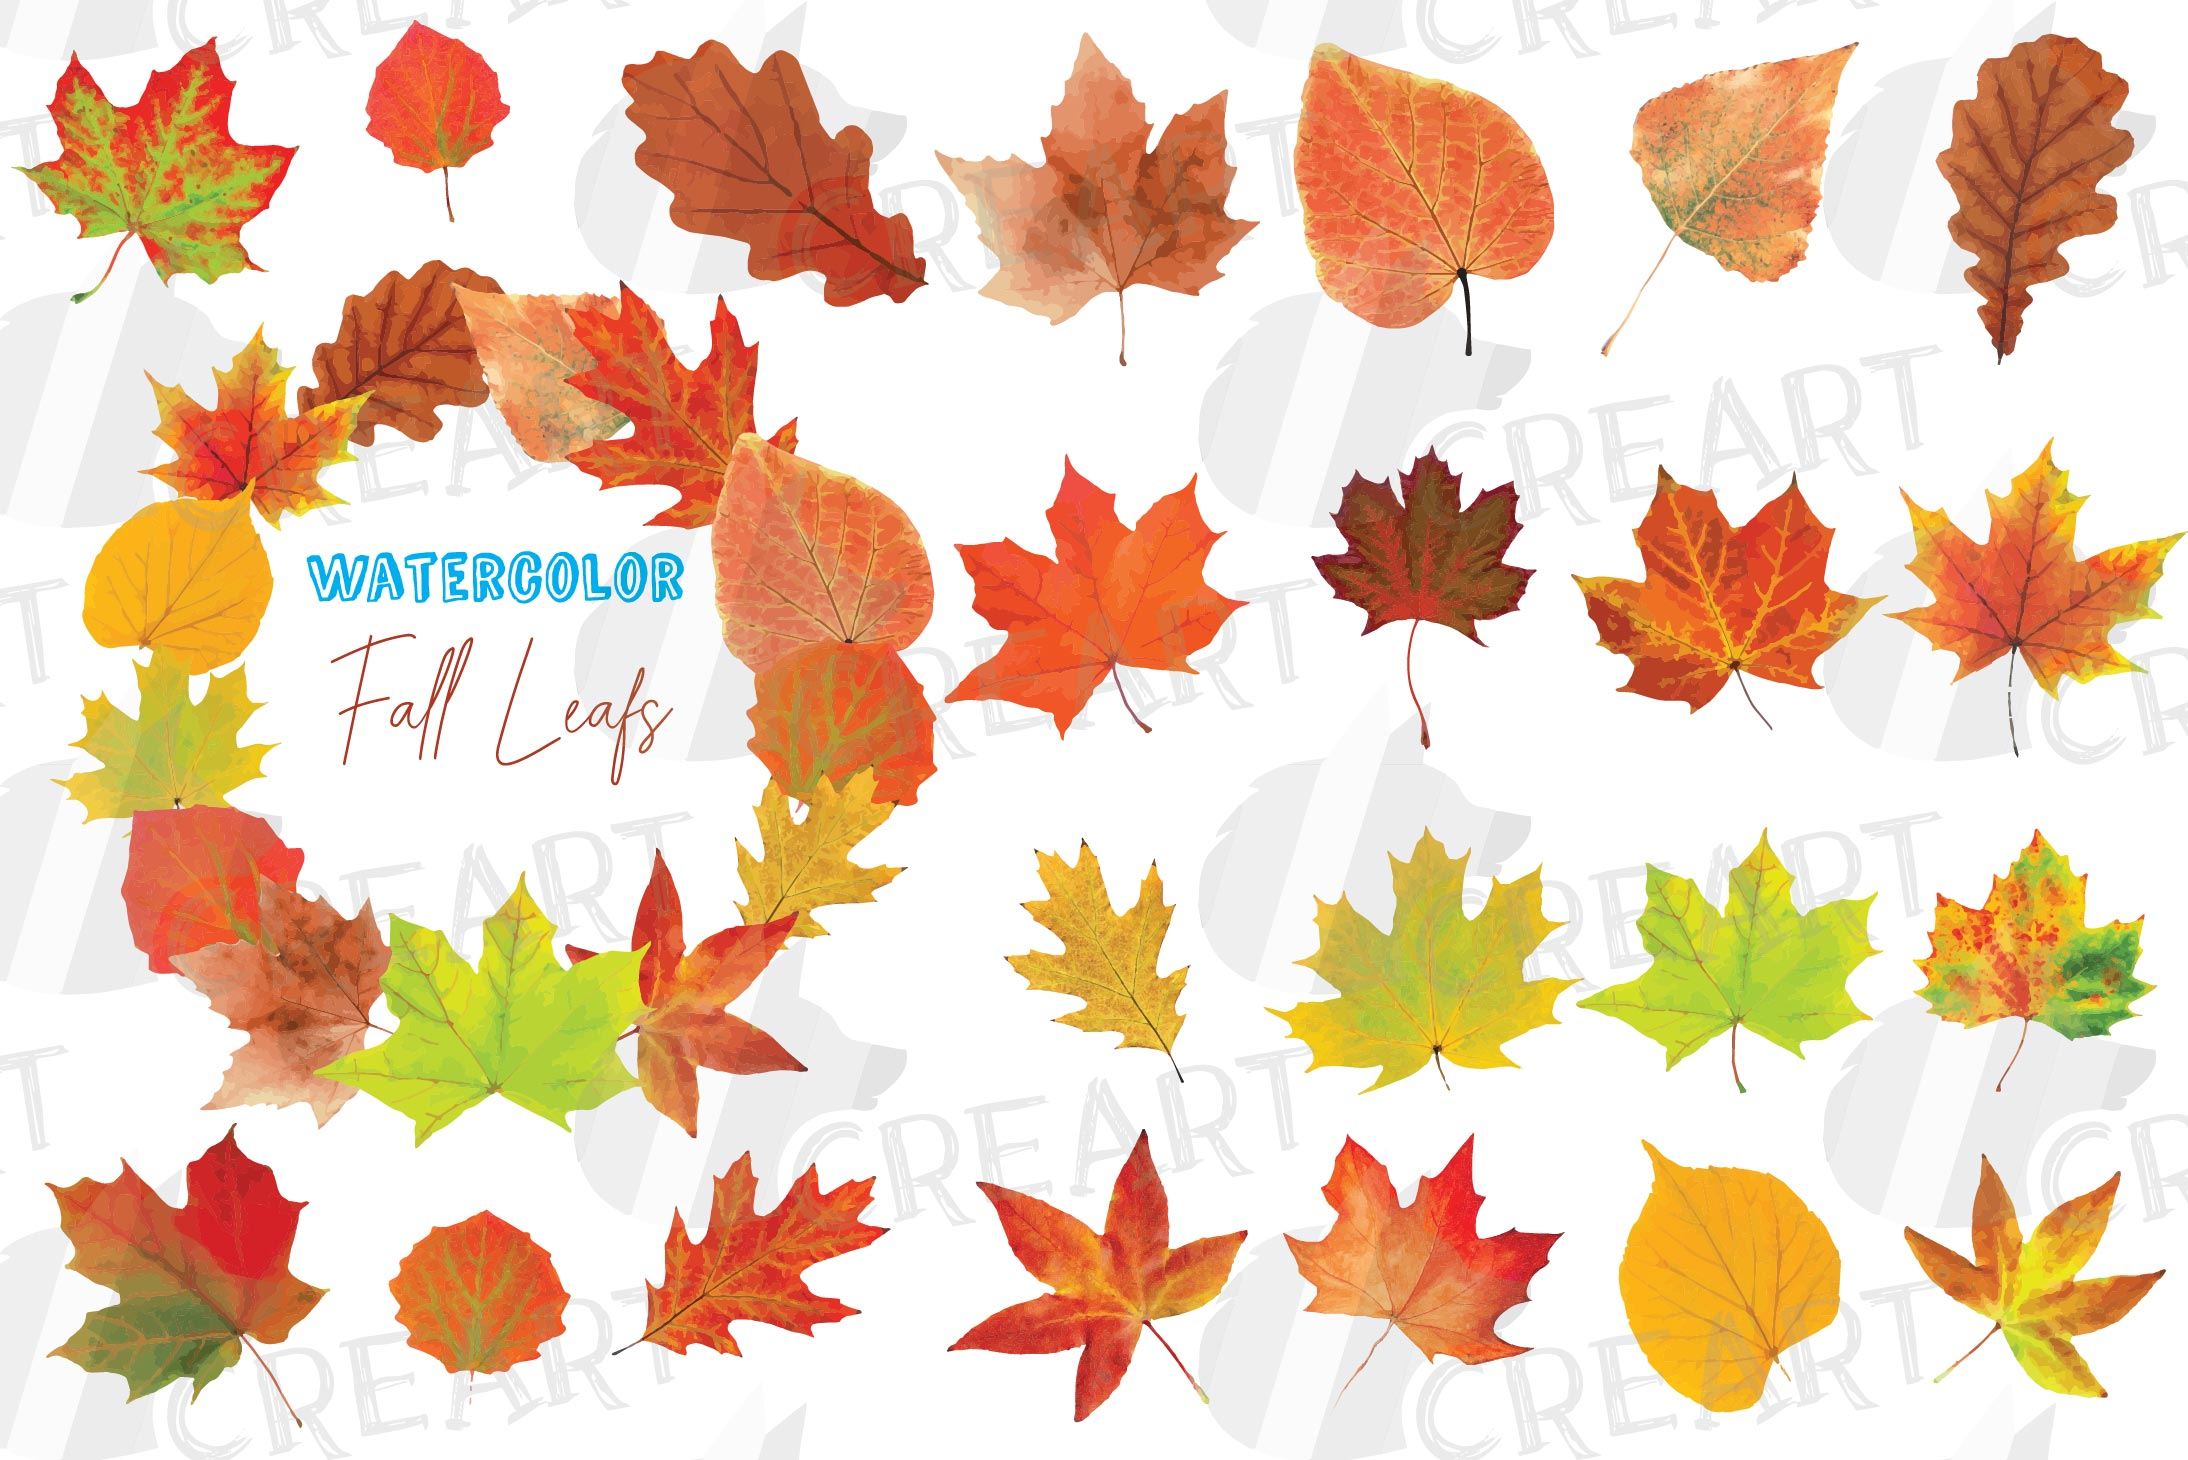 Autumn leaves decor clip art. Printable watercolor fall leaf.